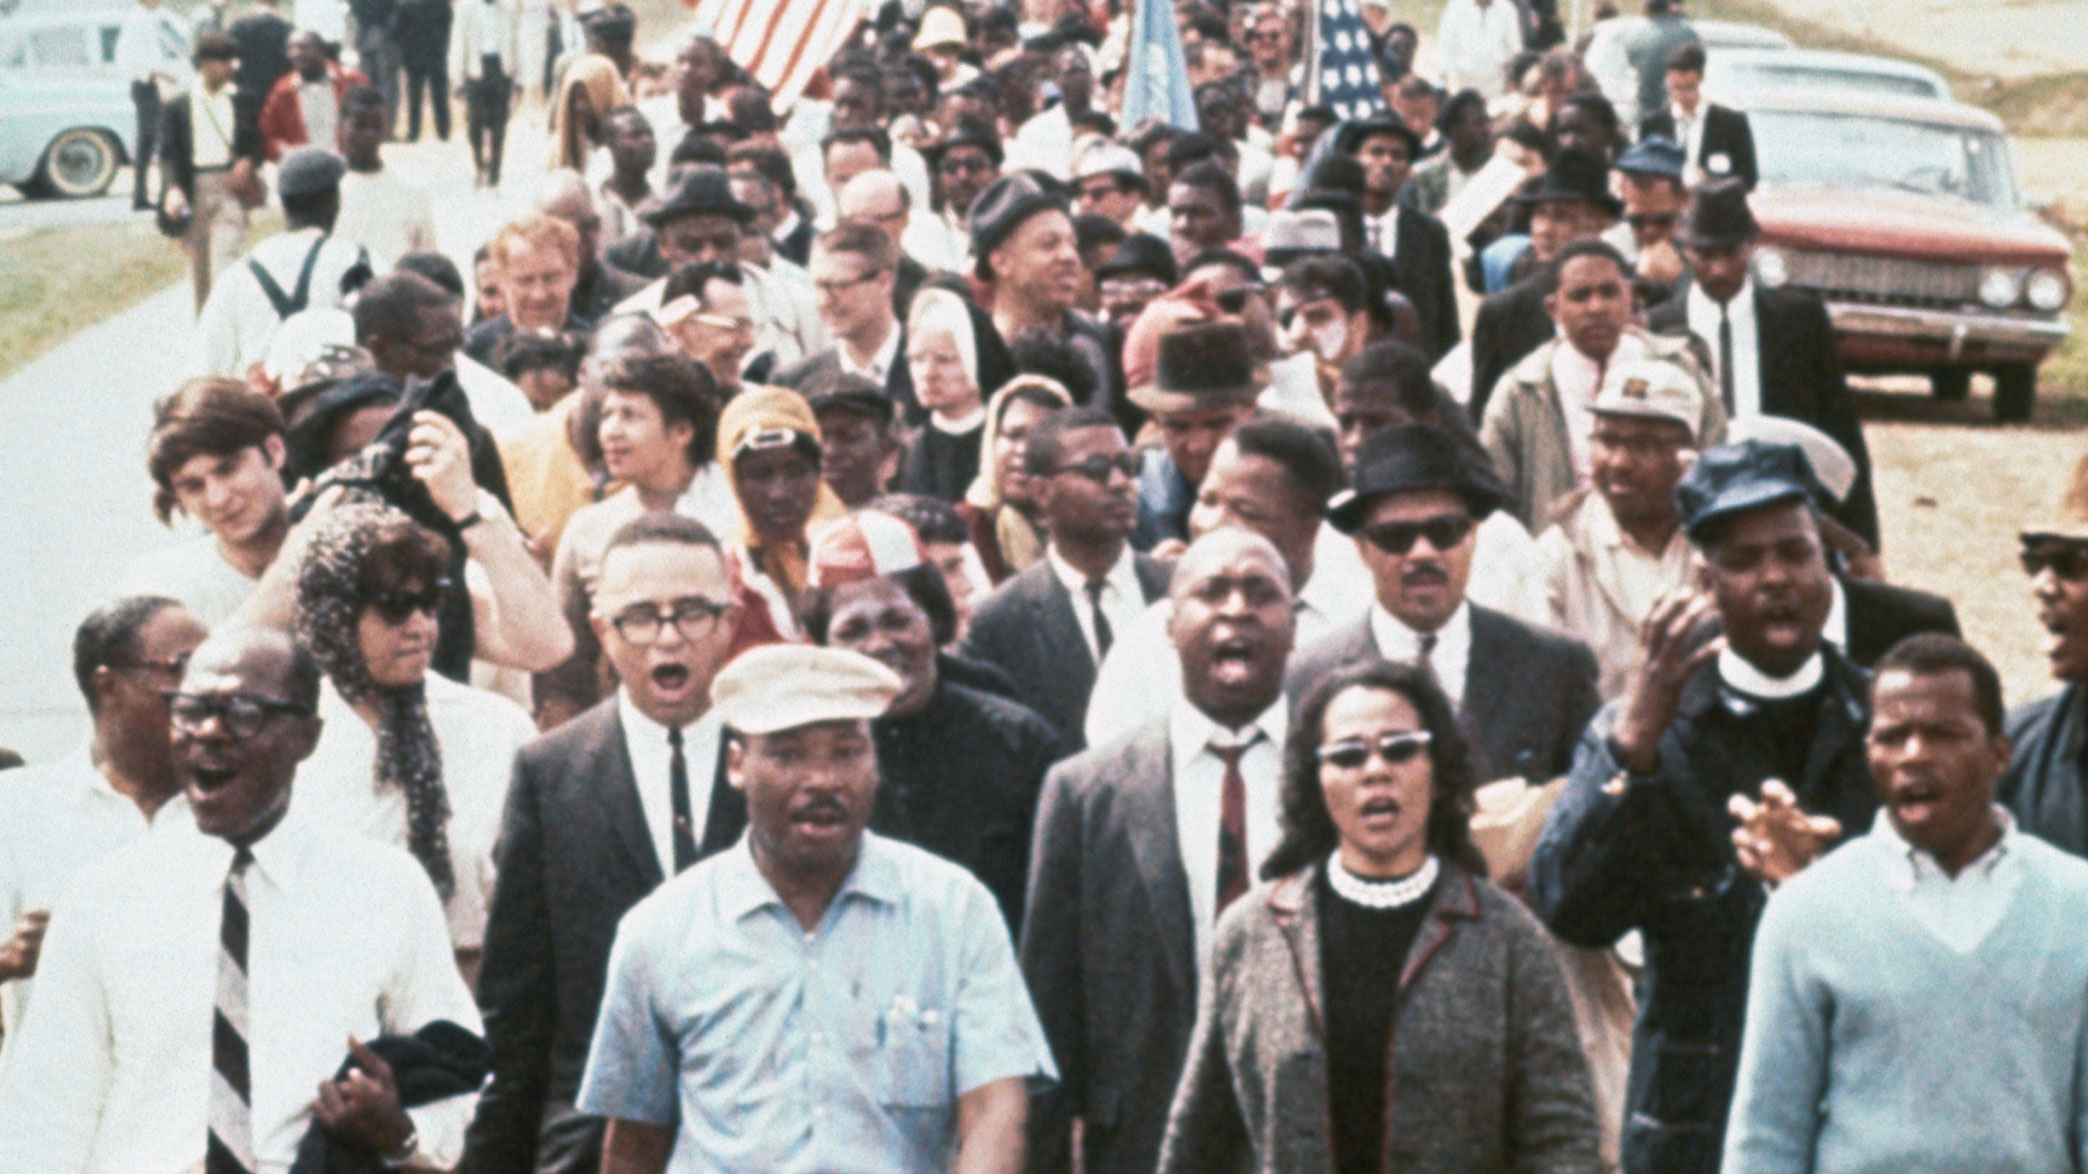 Martin Luther King Leading a Civil Rights March